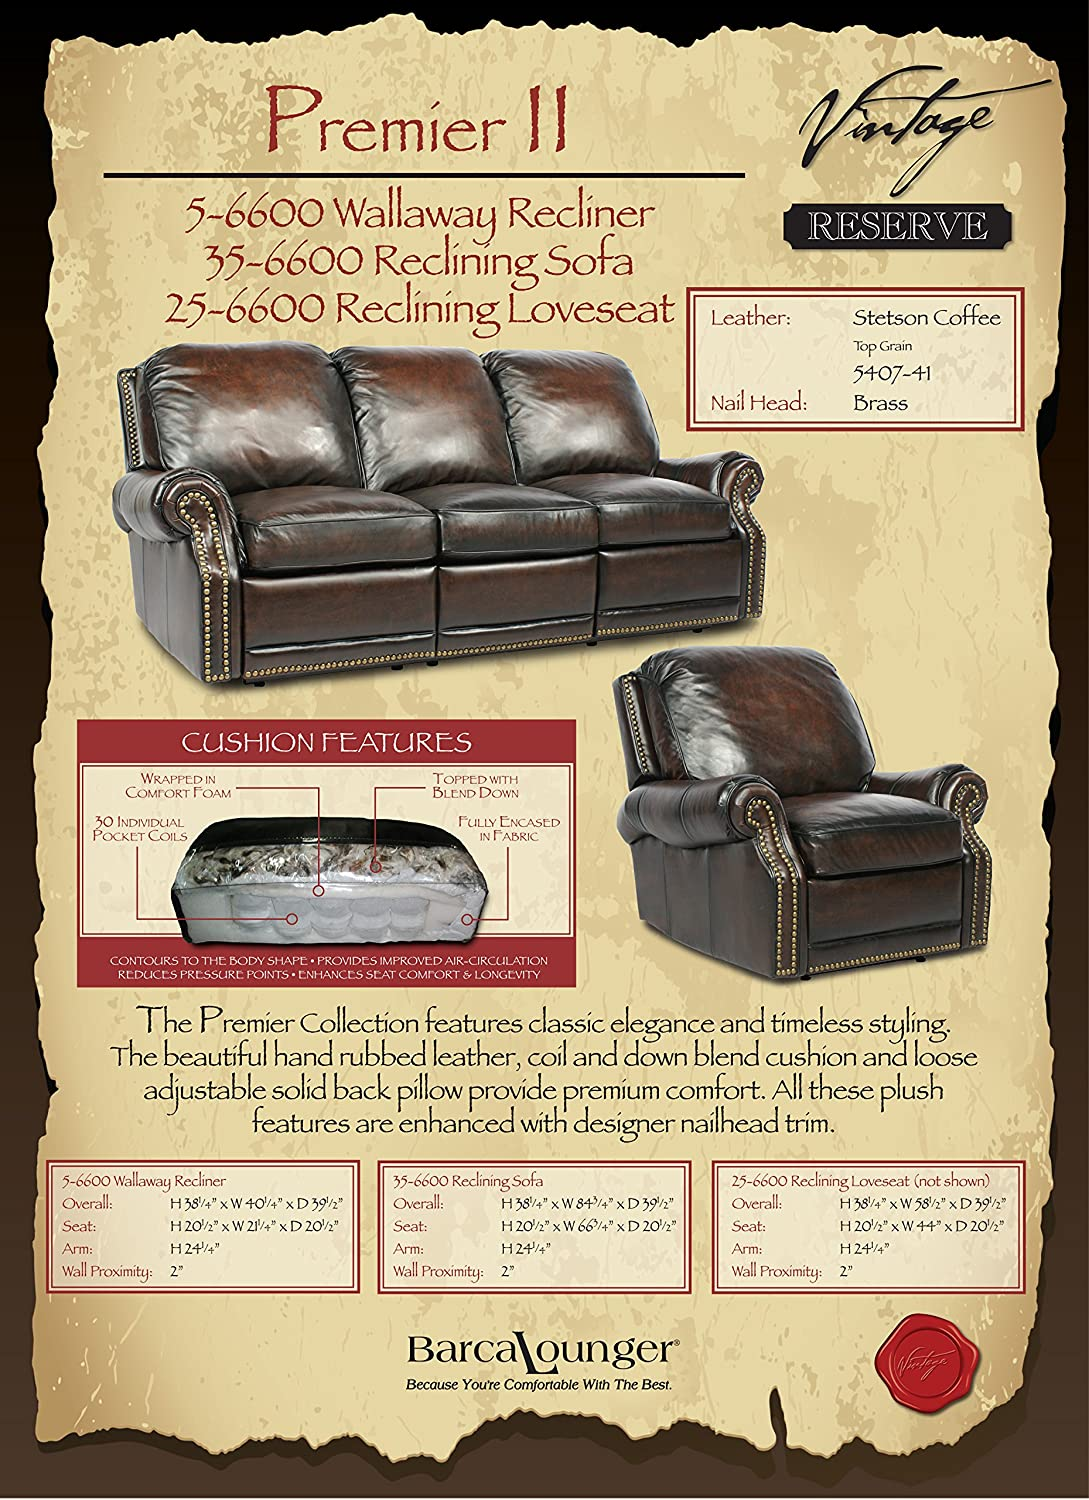 Amazon.com Power Recline BarcaLounger Premier II Electric Reclining Sofa - Stetson Coffee Kitchen u0026 Dining & Amazon.com: Power Recline BarcaLounger Premier II Electric ... islam-shia.org